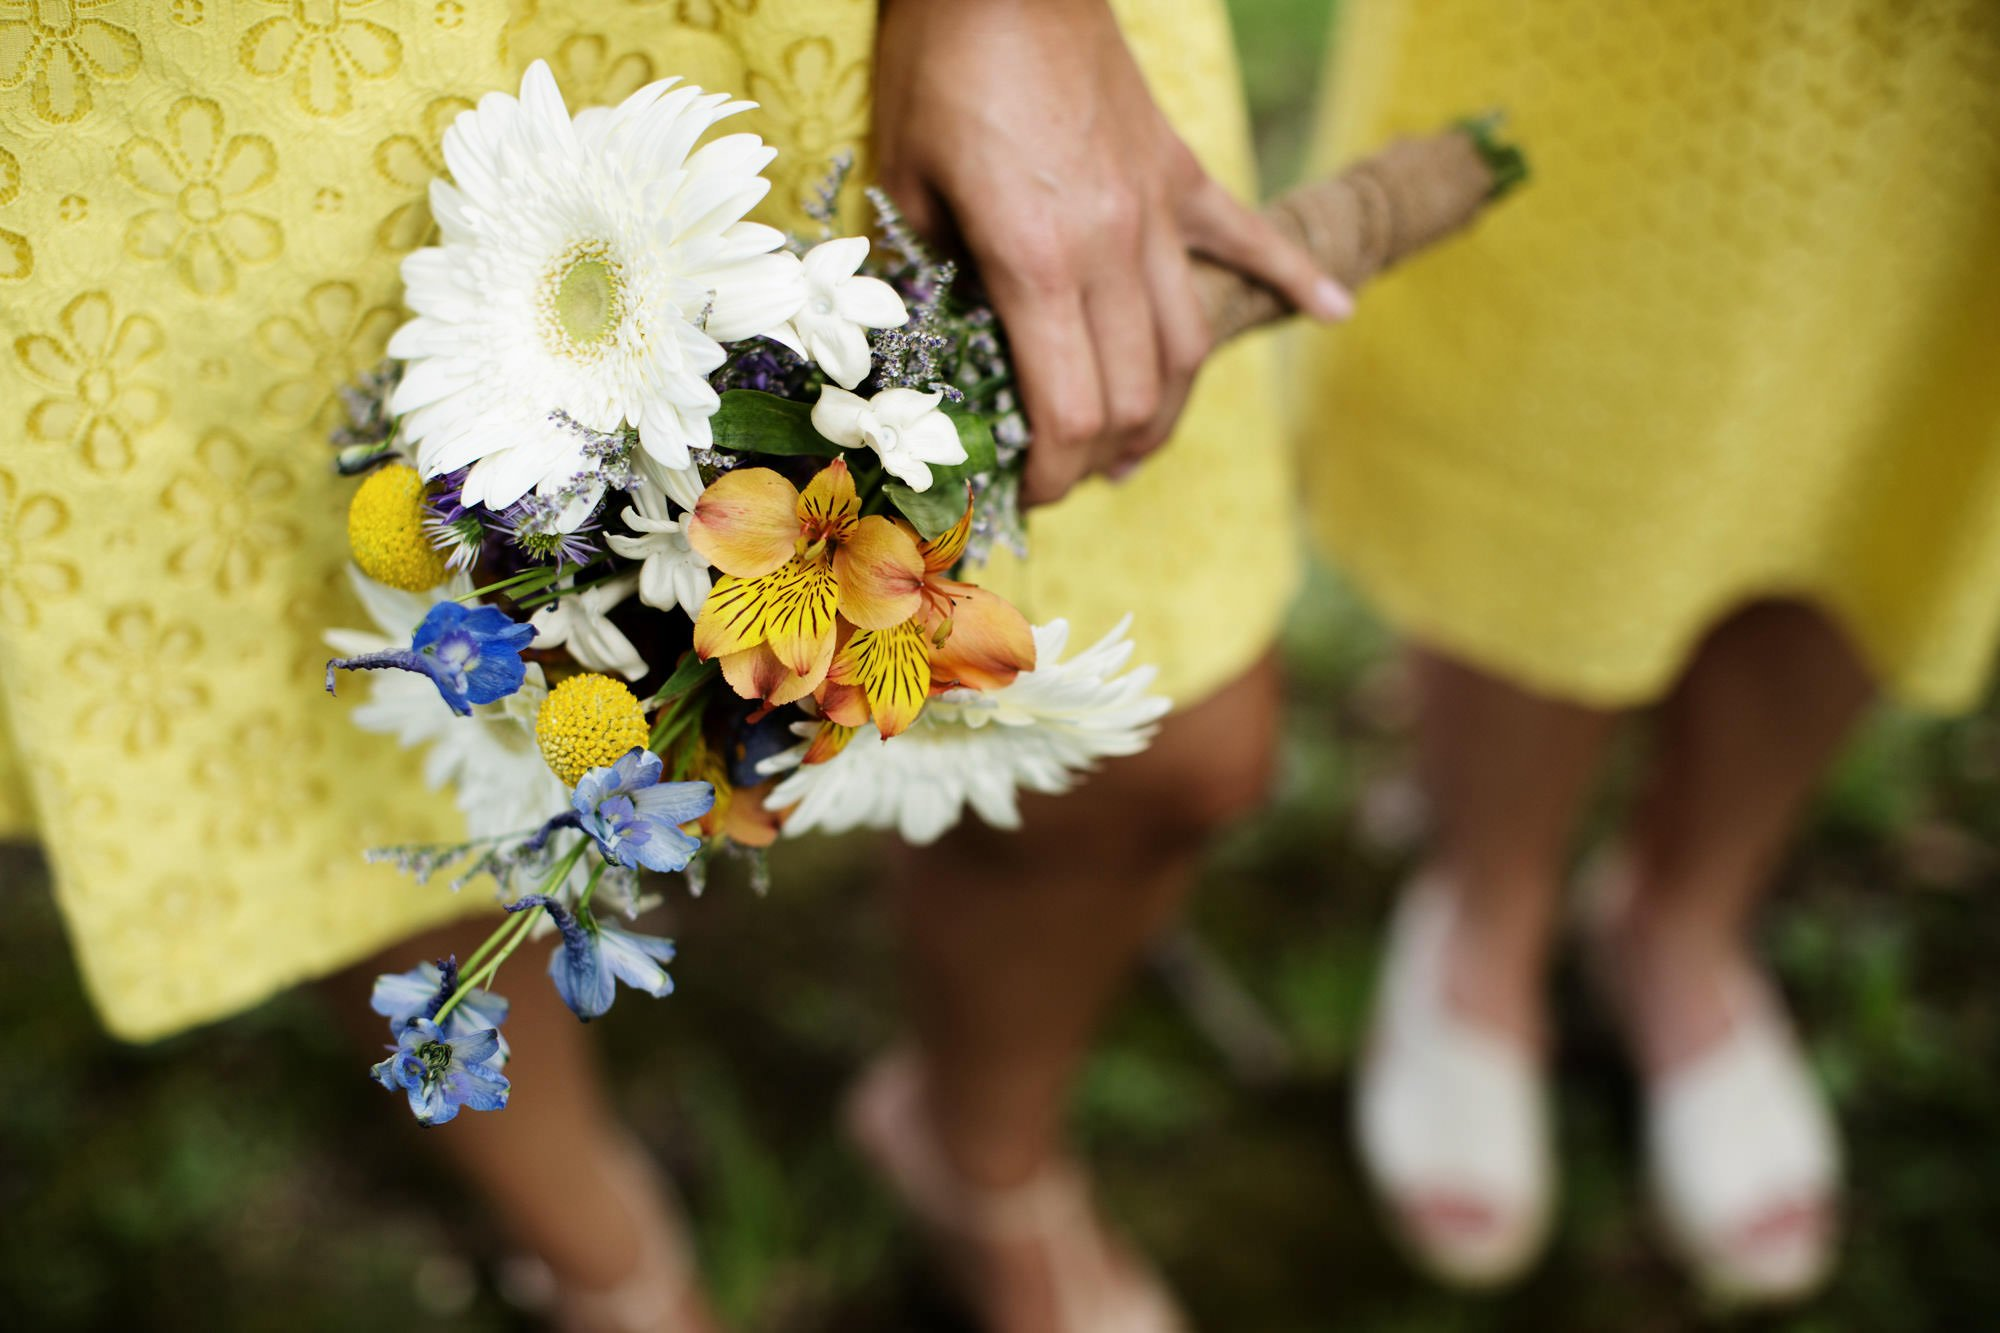 A bridesmaid's bouquet of flowers.